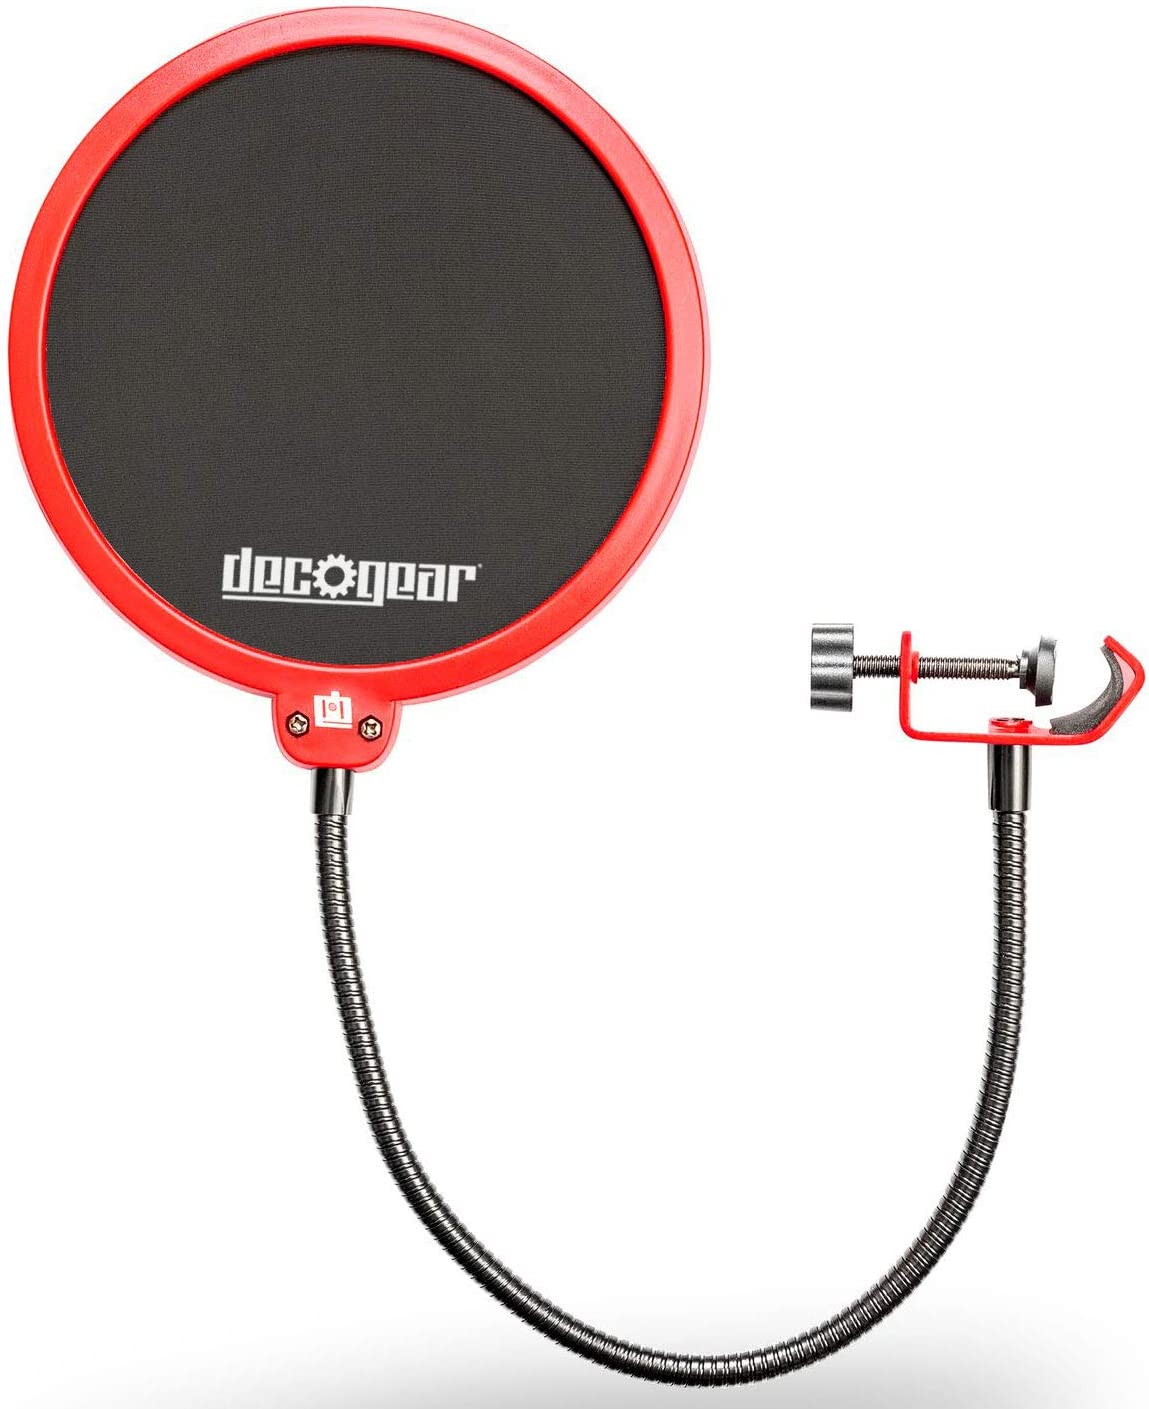 w//Pro Tools /& More +Deco Gear Adjustable Mic Arm +Deco Gear Universal Pop Filter 2nd Gen Focusrite Scarlett Solo USB Audio Interface Deco Gear XLR Male to Female Cable +1 Year Extended Warranty